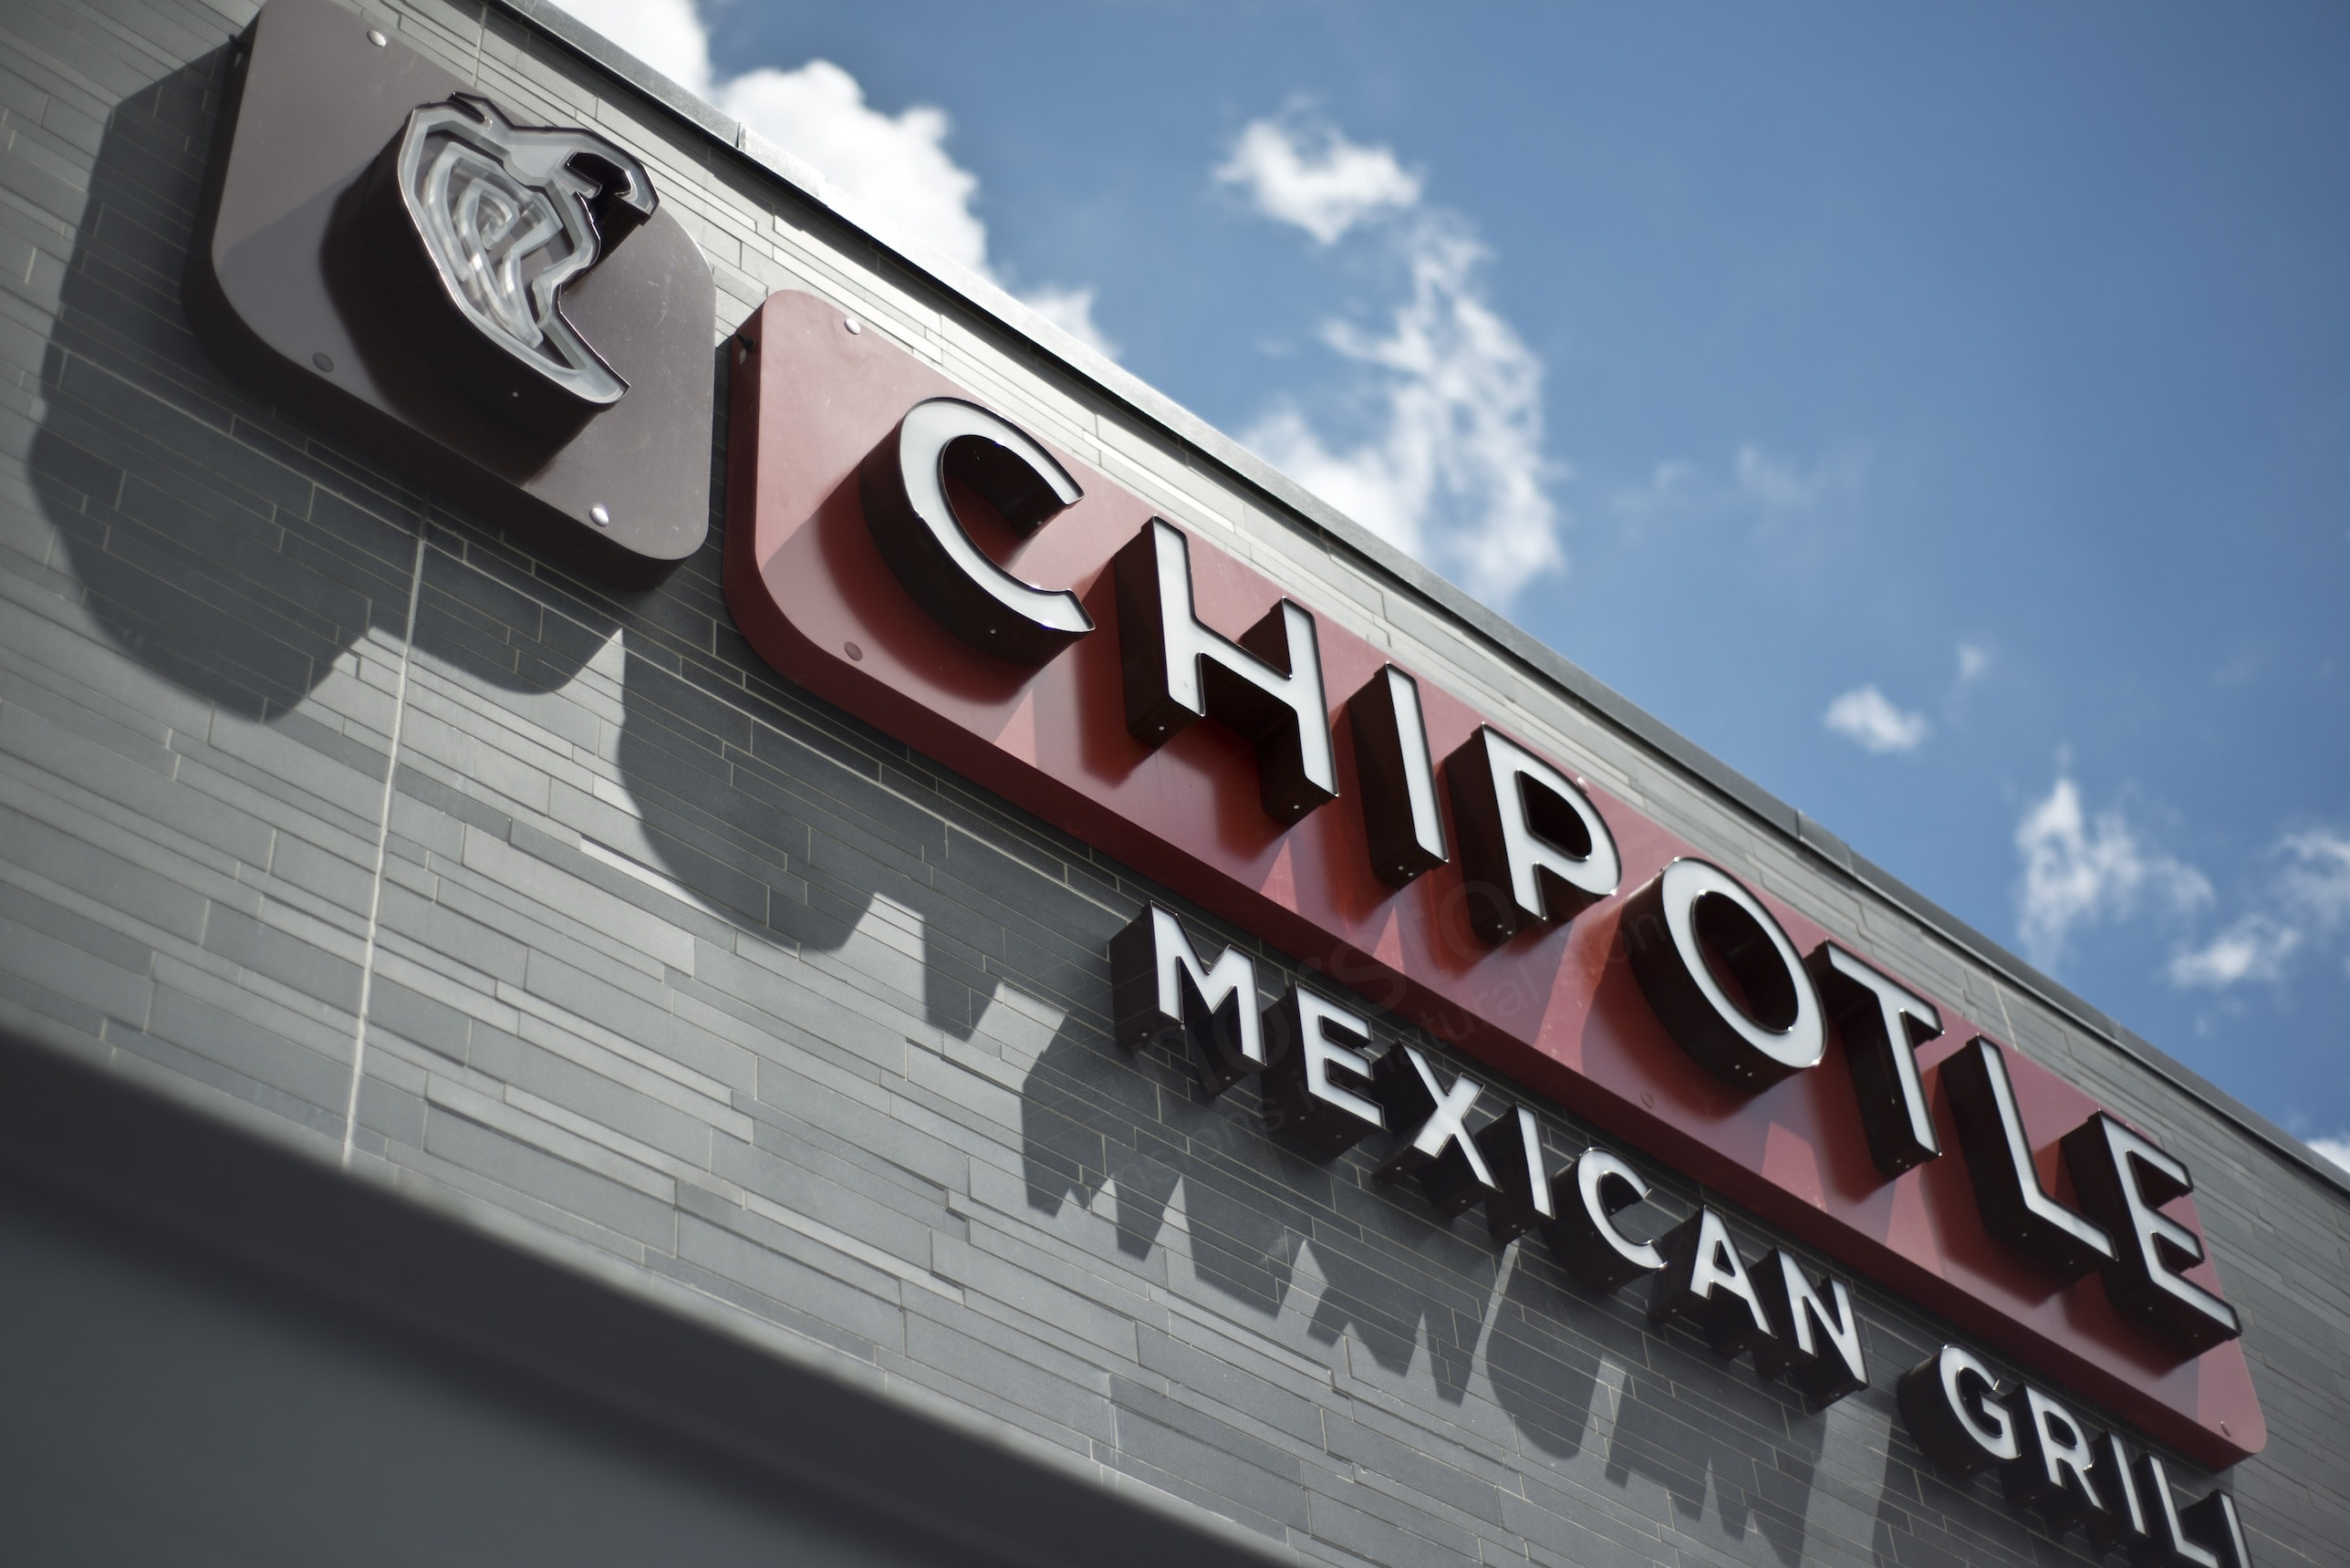 Basalt Mosaic Interlocking Tile - Chipotle Signage Florida